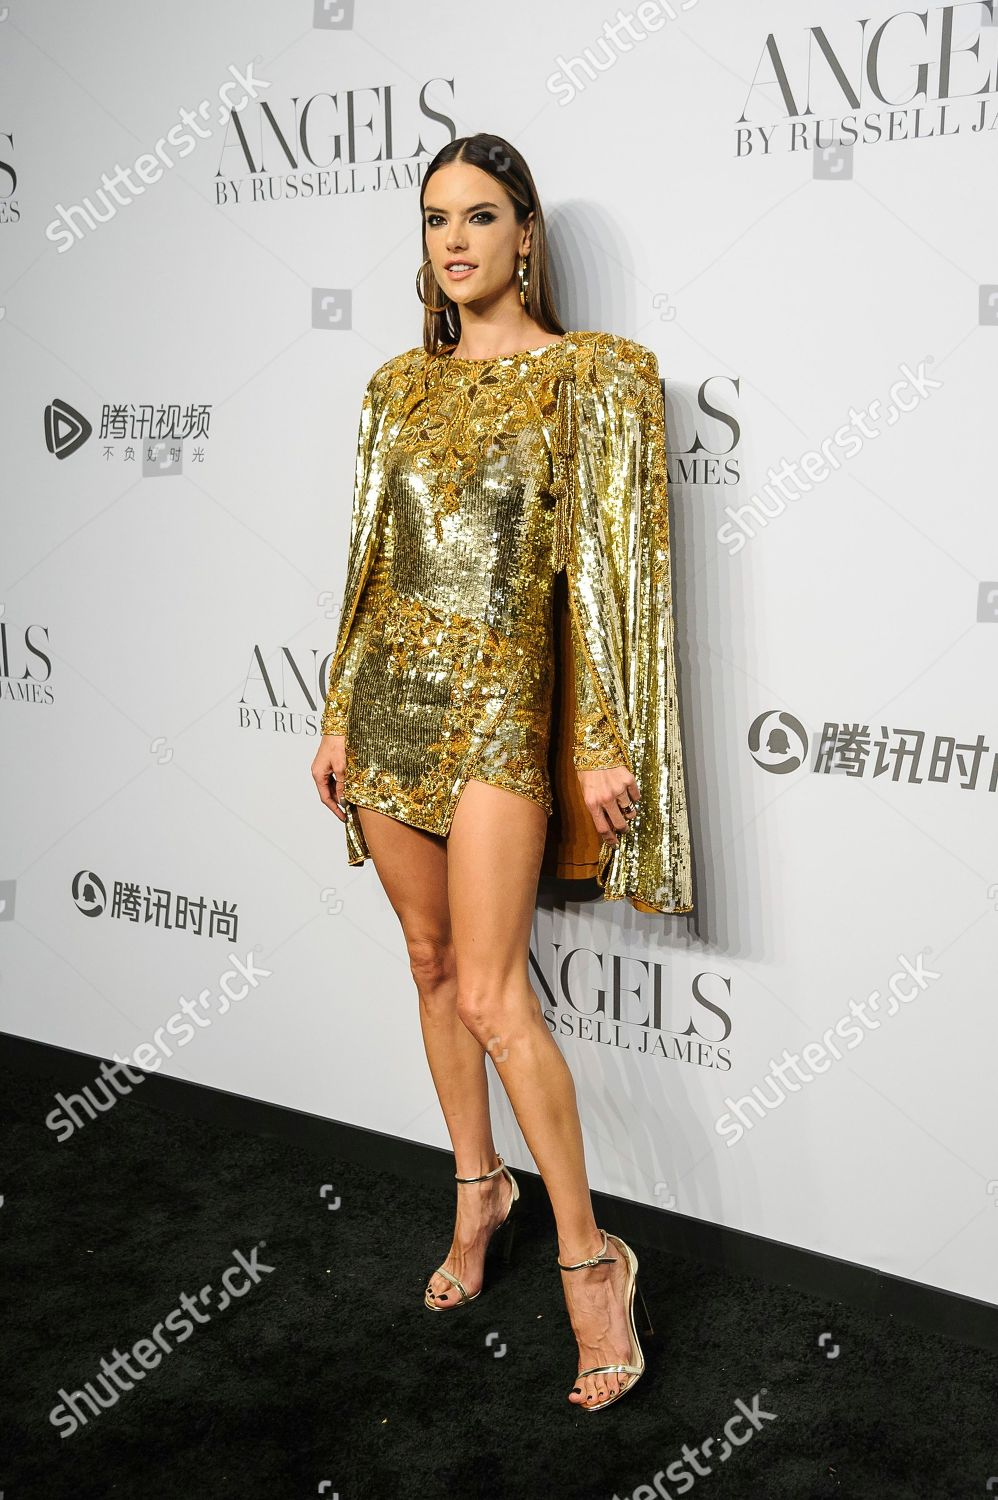 51b5accf3c428 Alessandra Ambrosio attends Angels by Russell James Editorial Stock ...